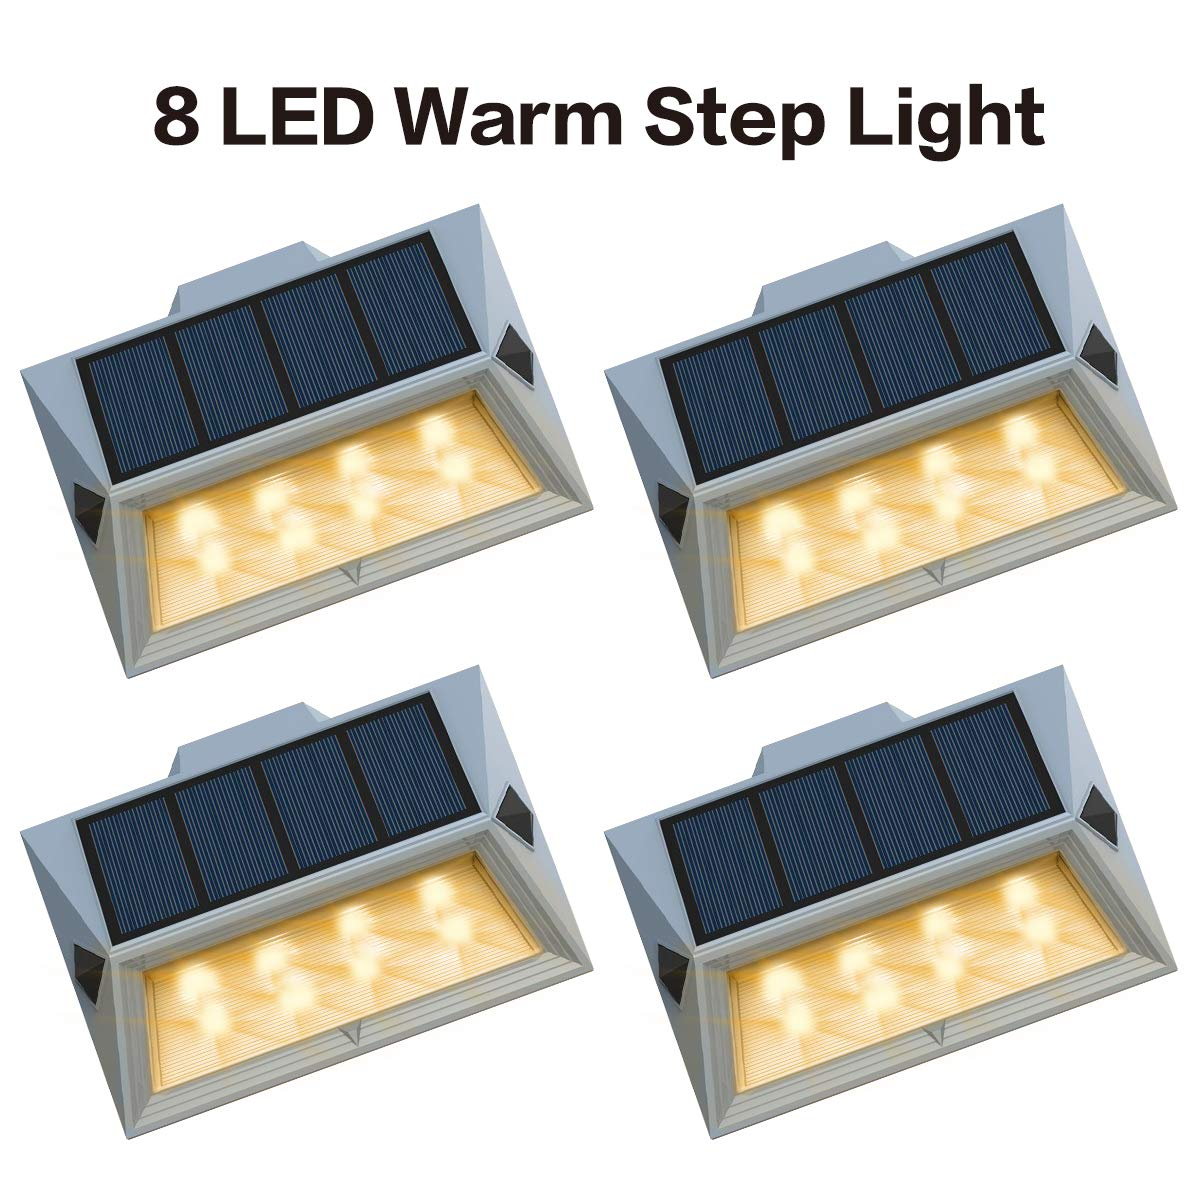 Roopure【Newest Version Warm 8 LED】Warm White Solar Step Lights Outdoor Decorative Solar Deck Lights Wireless Waterproof Lighting for Stair Garden Wall Paths Patio Decks Auto On/Off 4 Pack